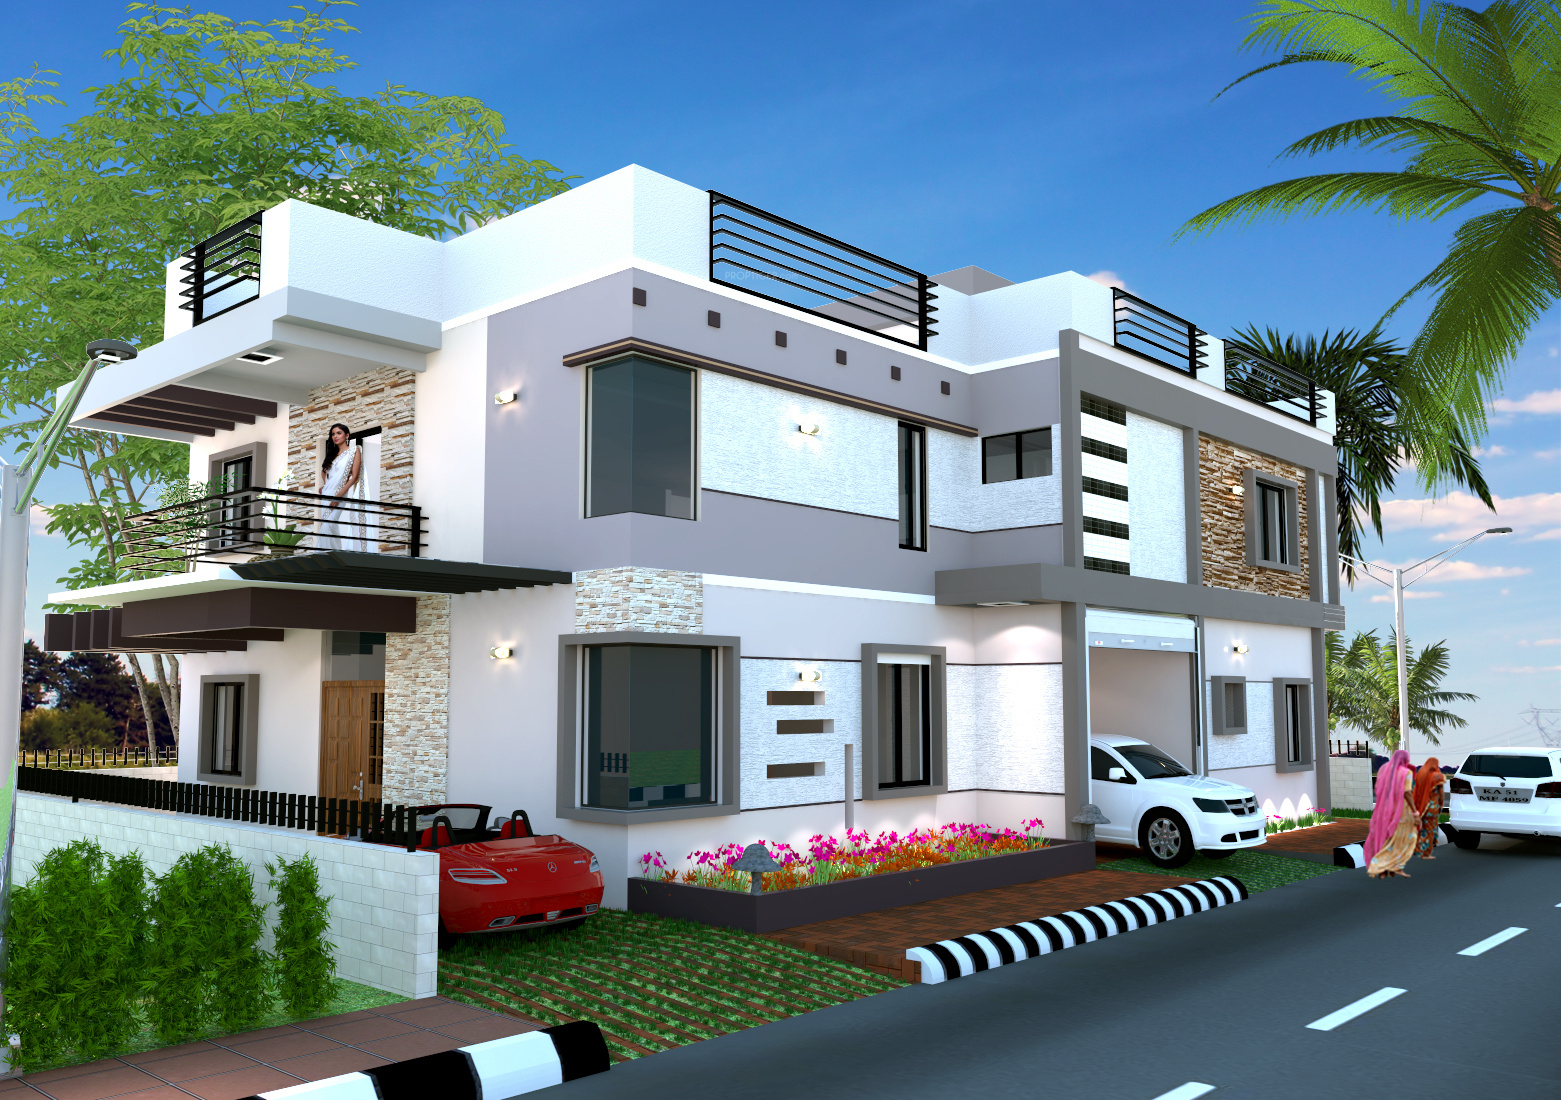 Home Land Developers Hl Villa 640695 on Residential Floor Plans And Elevations